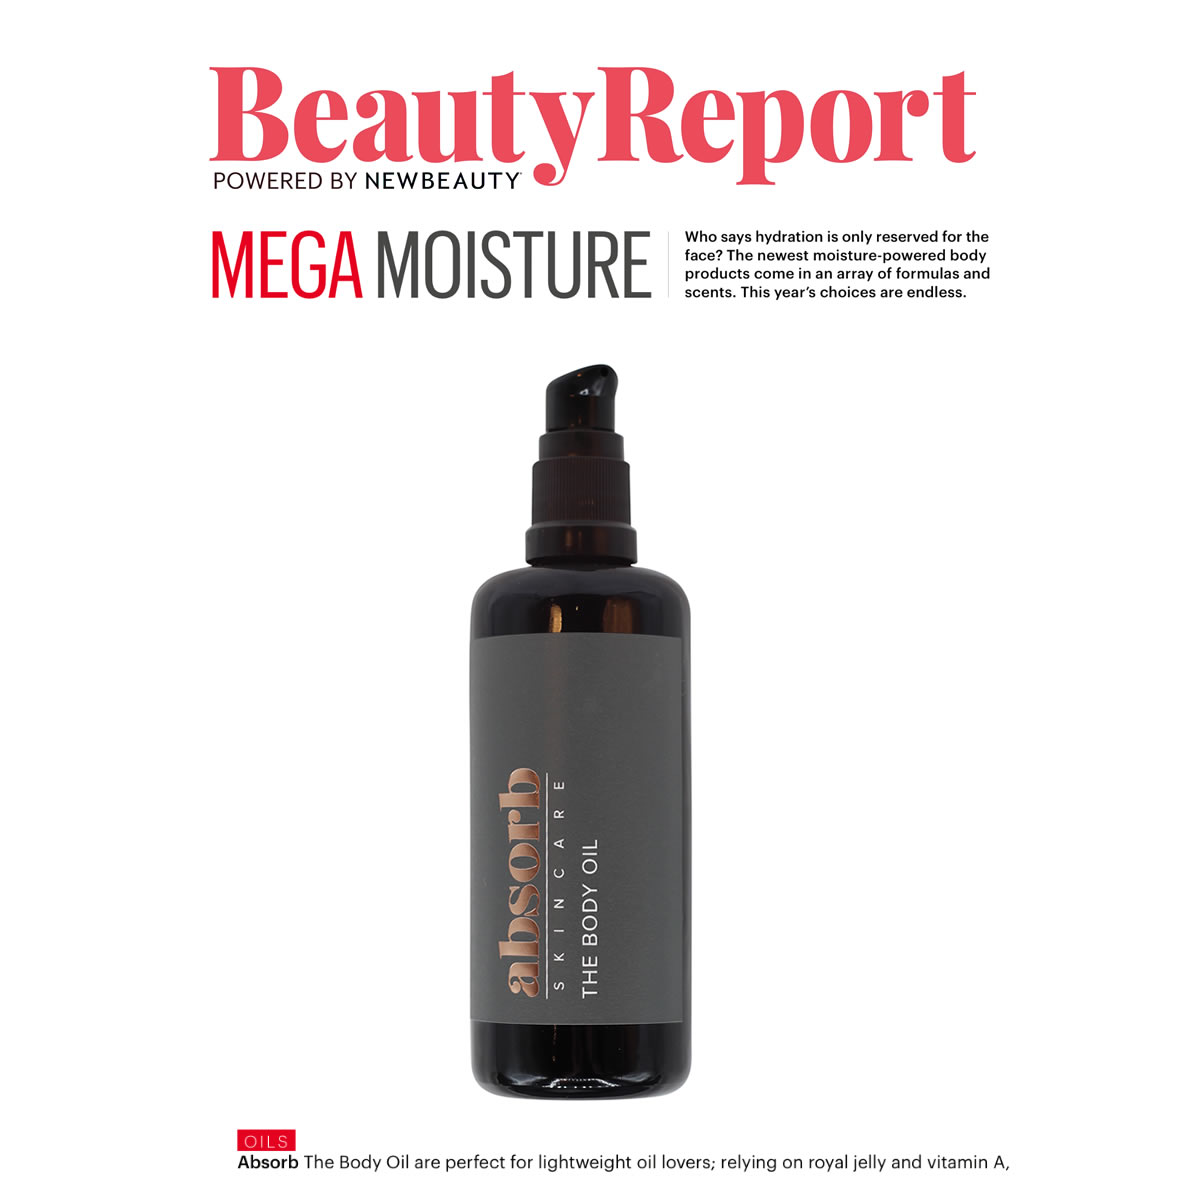 Beauty Report by New Beauty